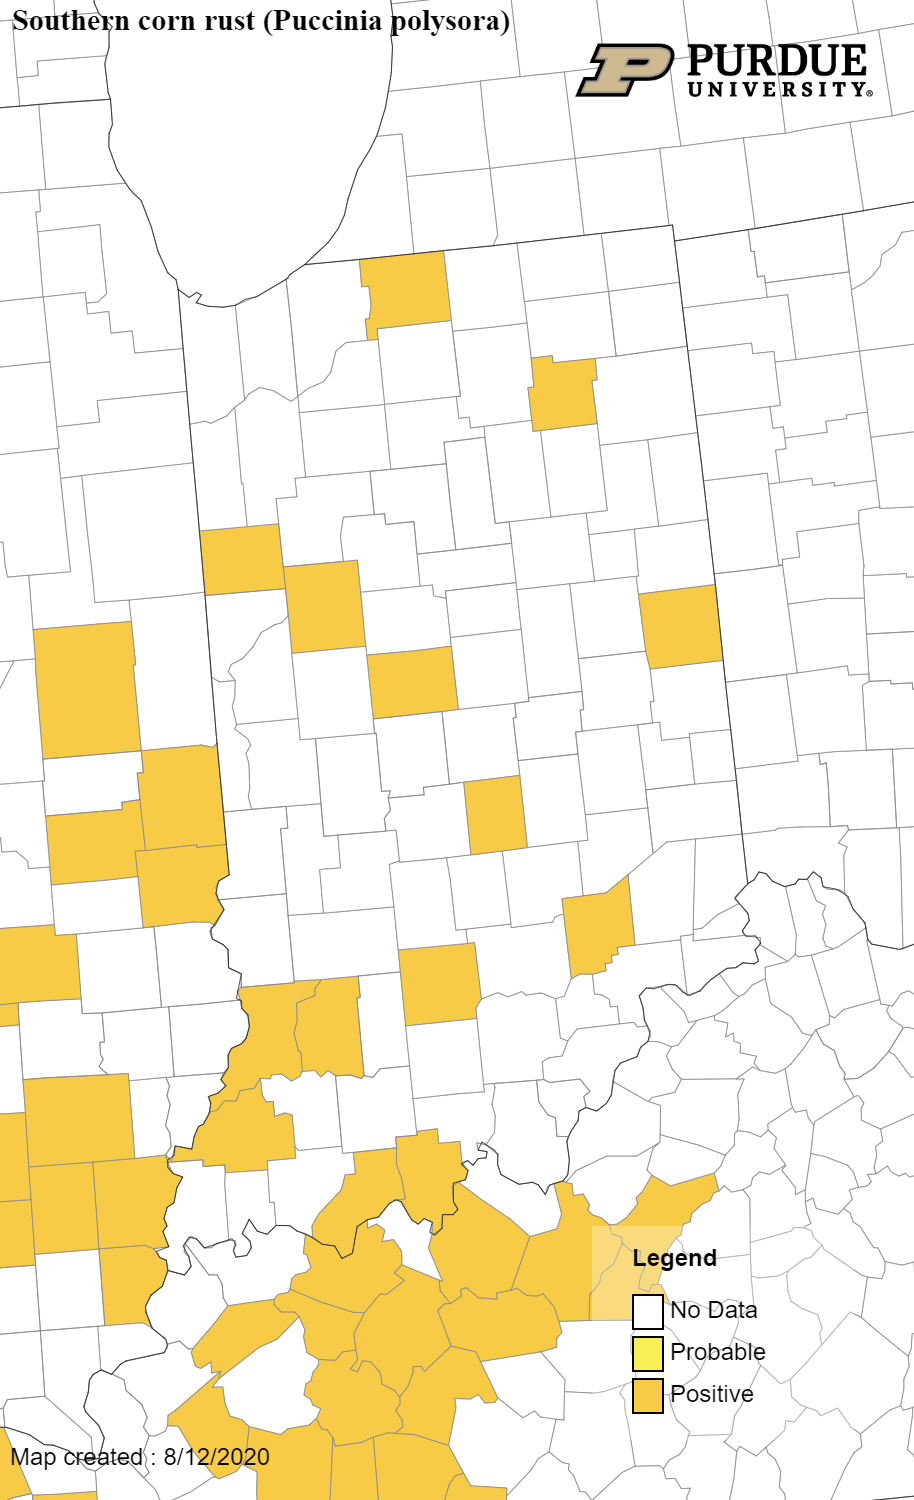 Figure 3. Map of counties confirmed for southern corn rust in Indiana as of August 12, 2020.